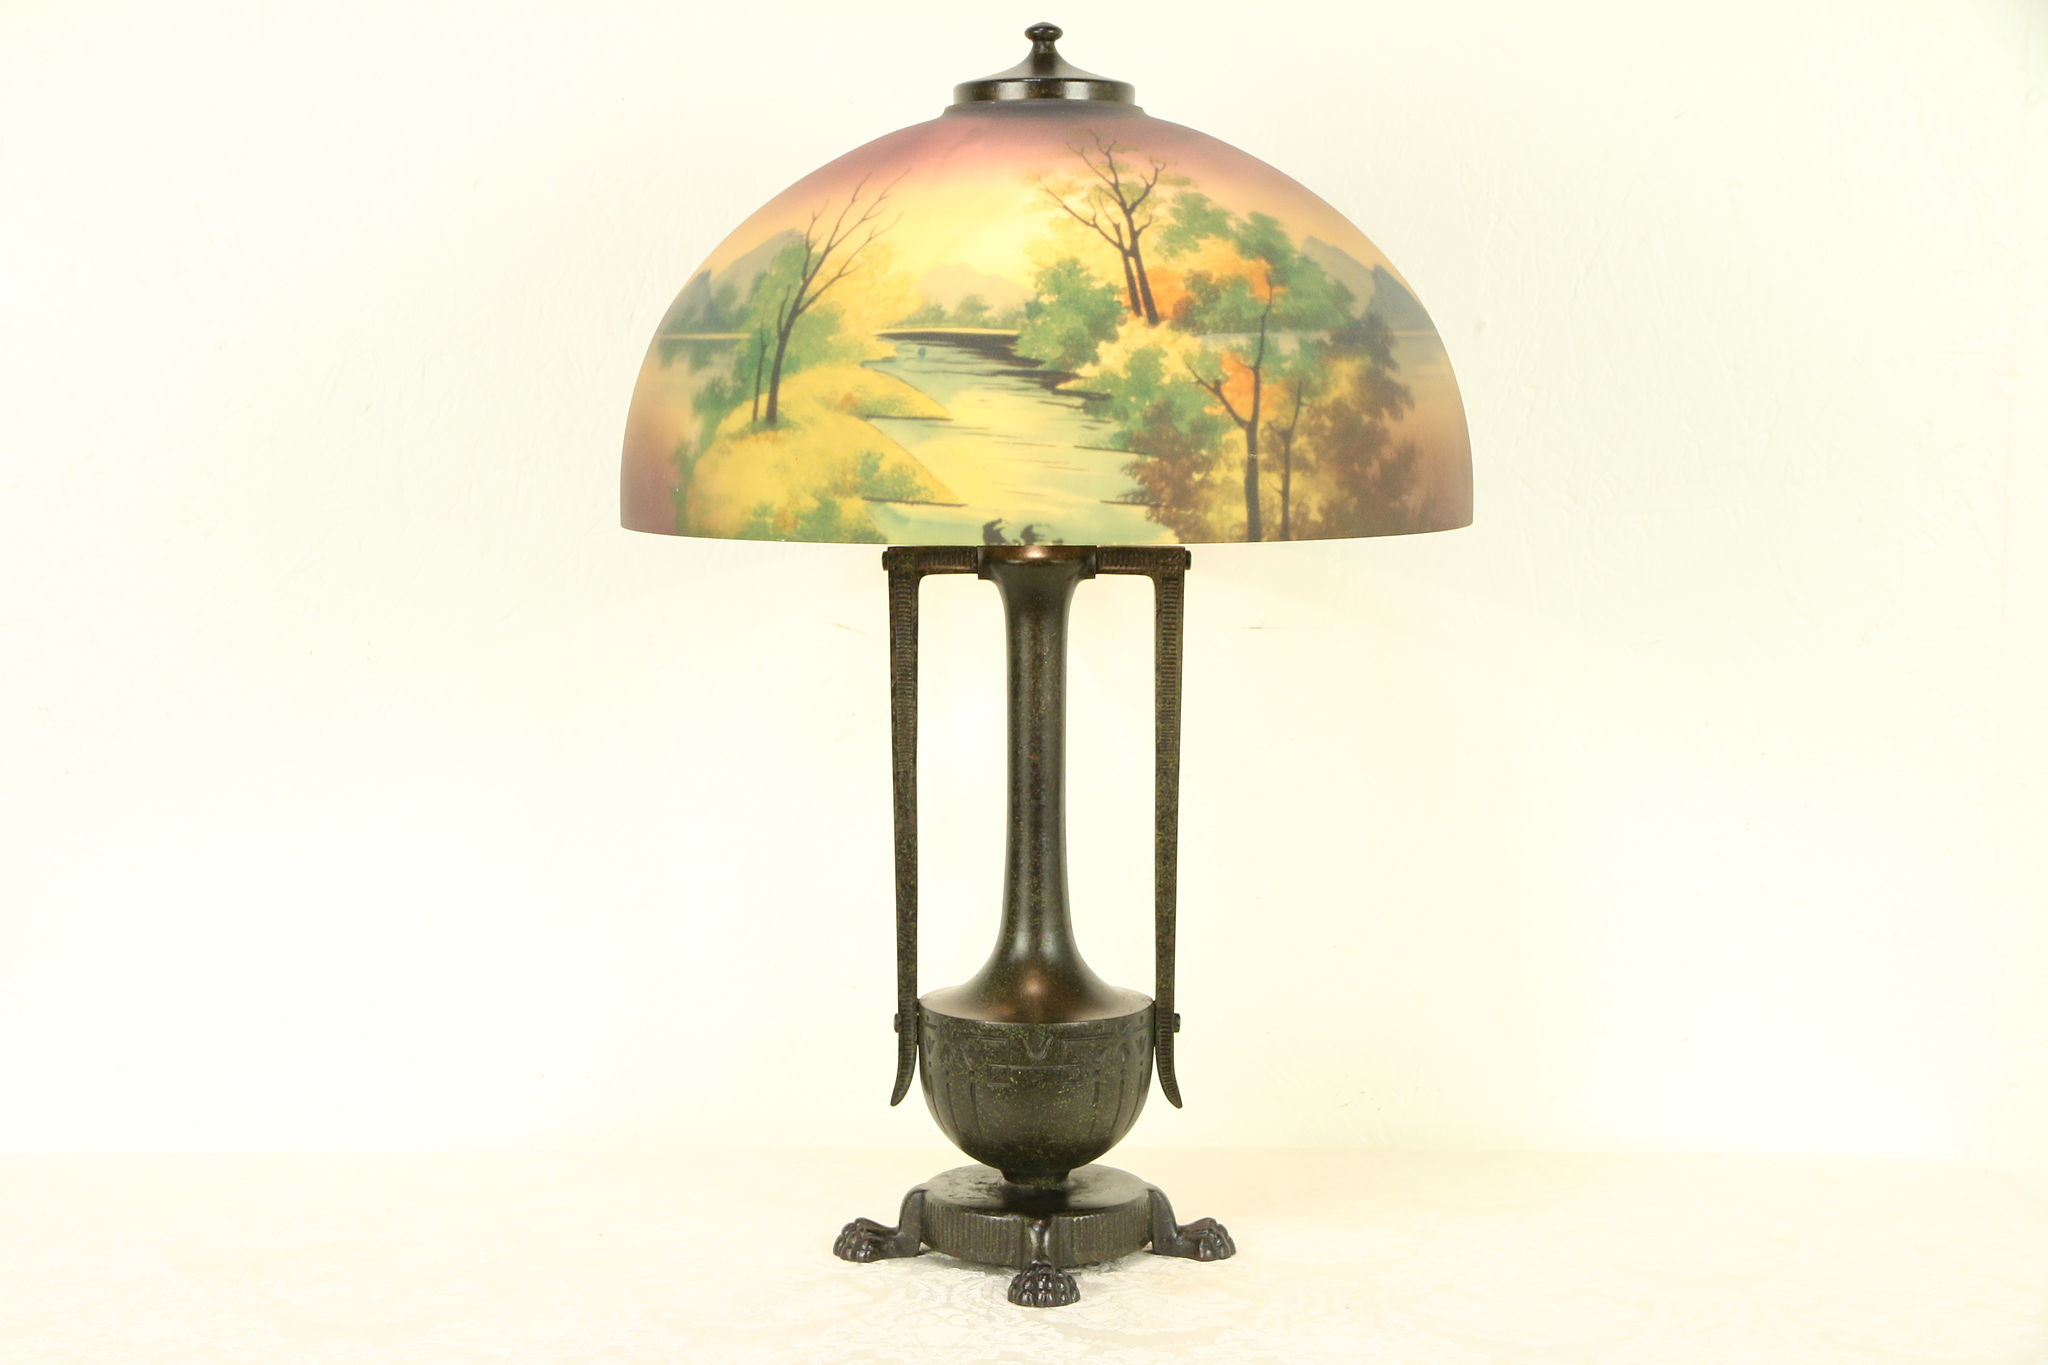 Sold Moe Bridges Signed Antique Lamp Reverse Painted Glass Shade 30421 Harp Gallery Antiques Furniture